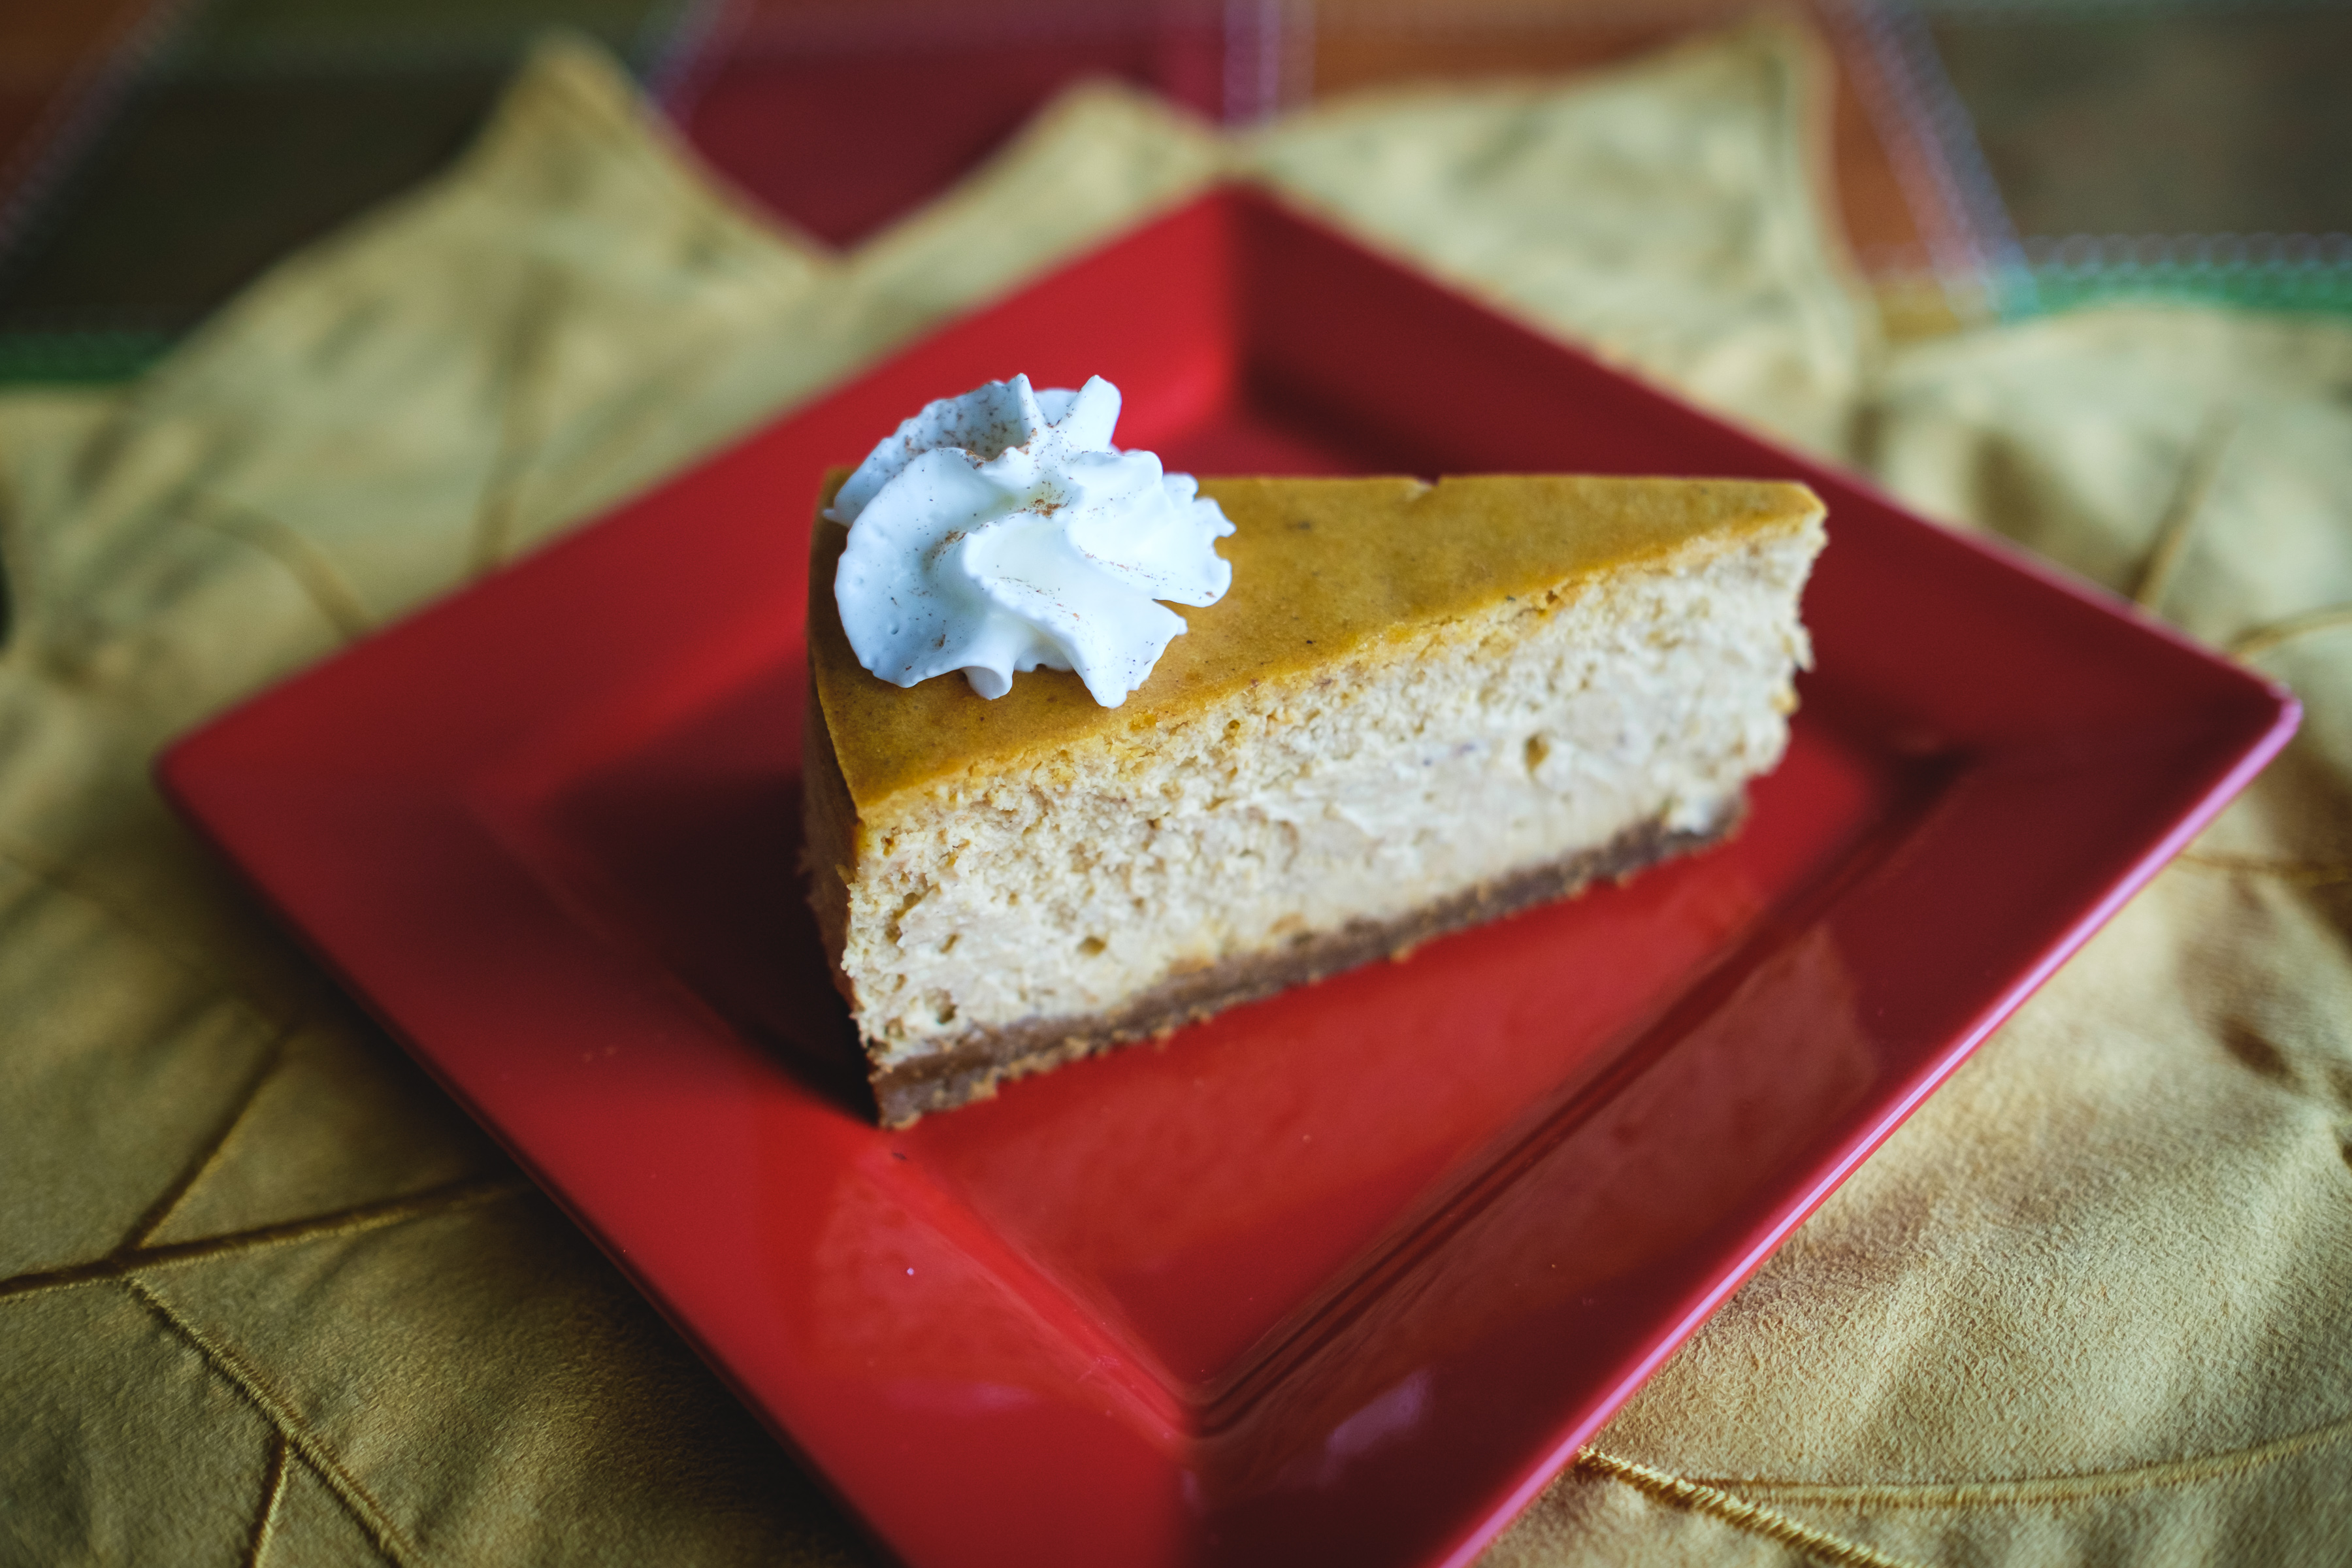 Chef Becky's Pumpkin Spice Cheesecake could be the centerpiece of your Thanksgiving meal. Photo courtesy of Craig Volpe.